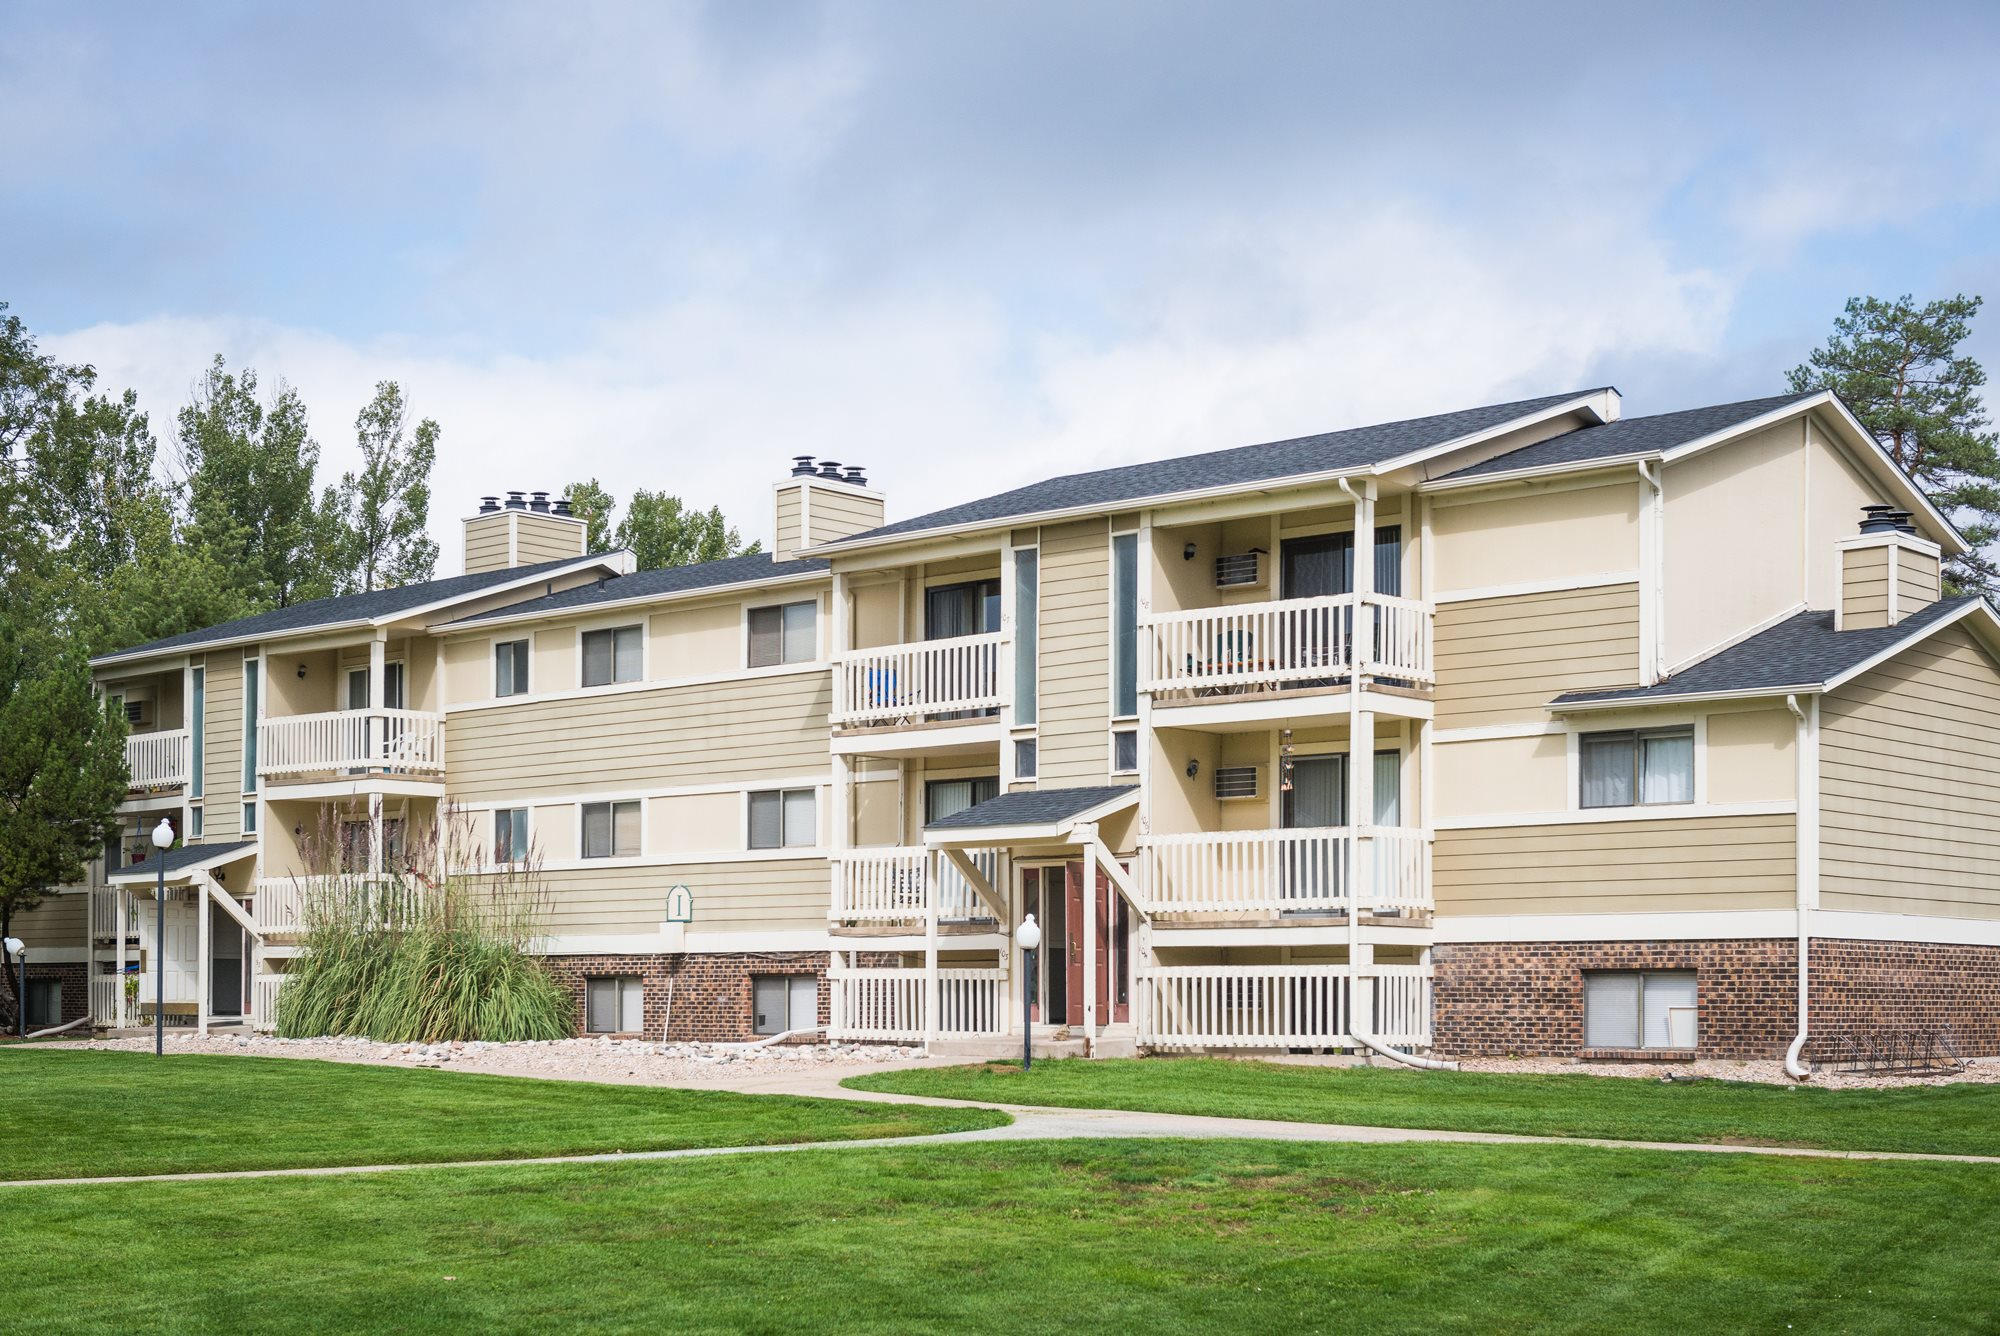 Photos and video of village gardens apartments in fort - Village garden apartments fort collins ...